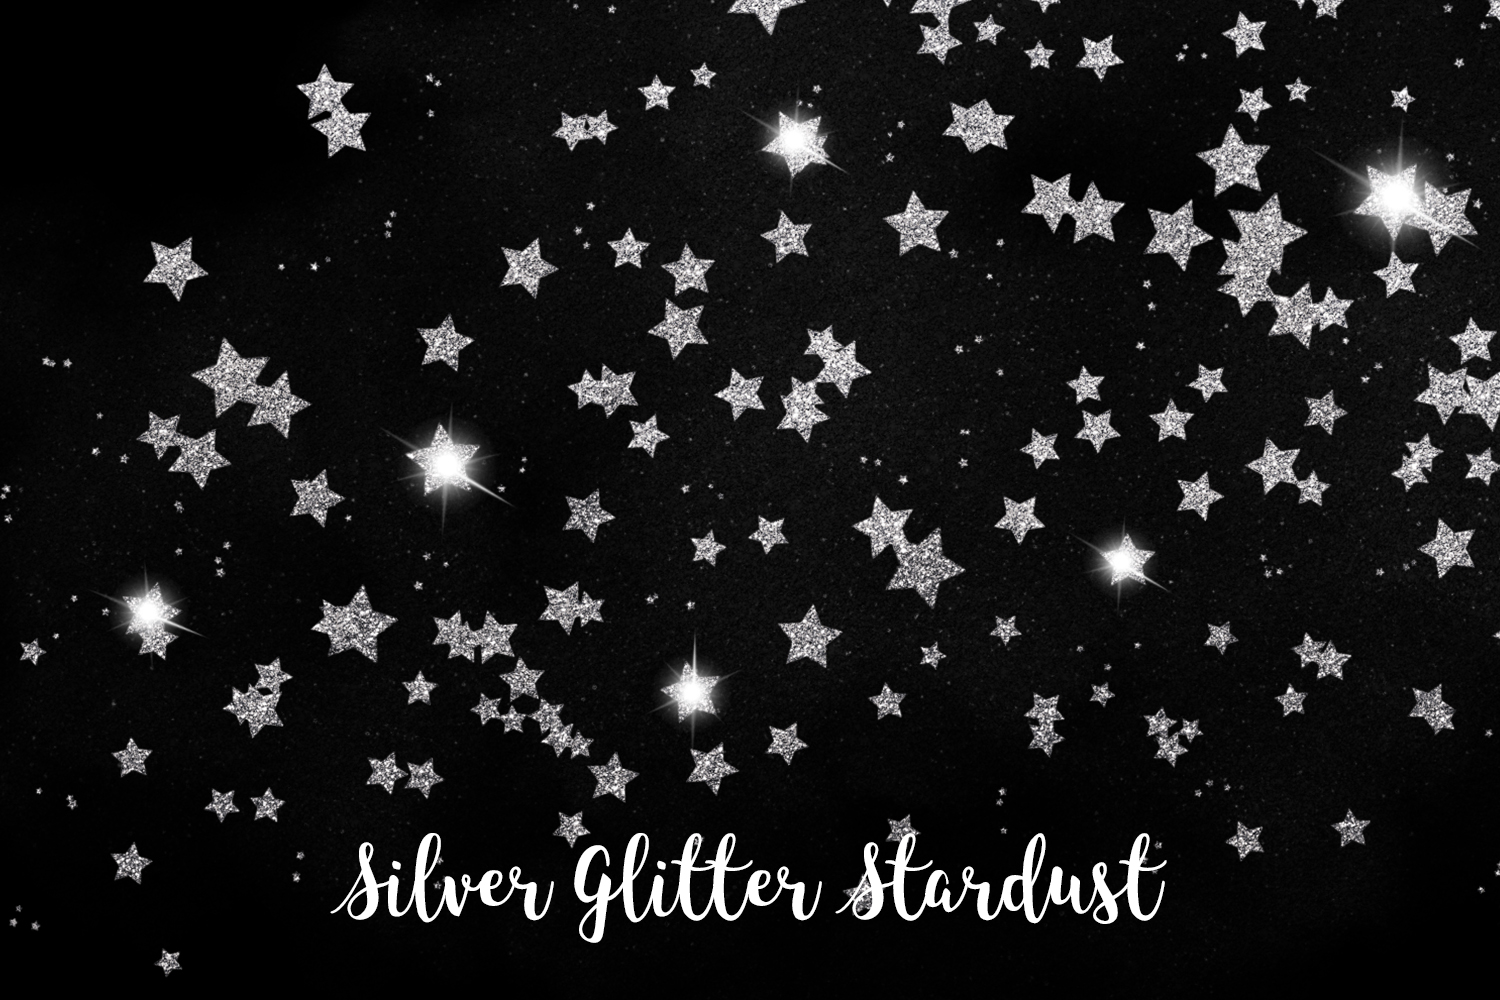 Silver Glitter Stardust, Transparent PNG example image 3